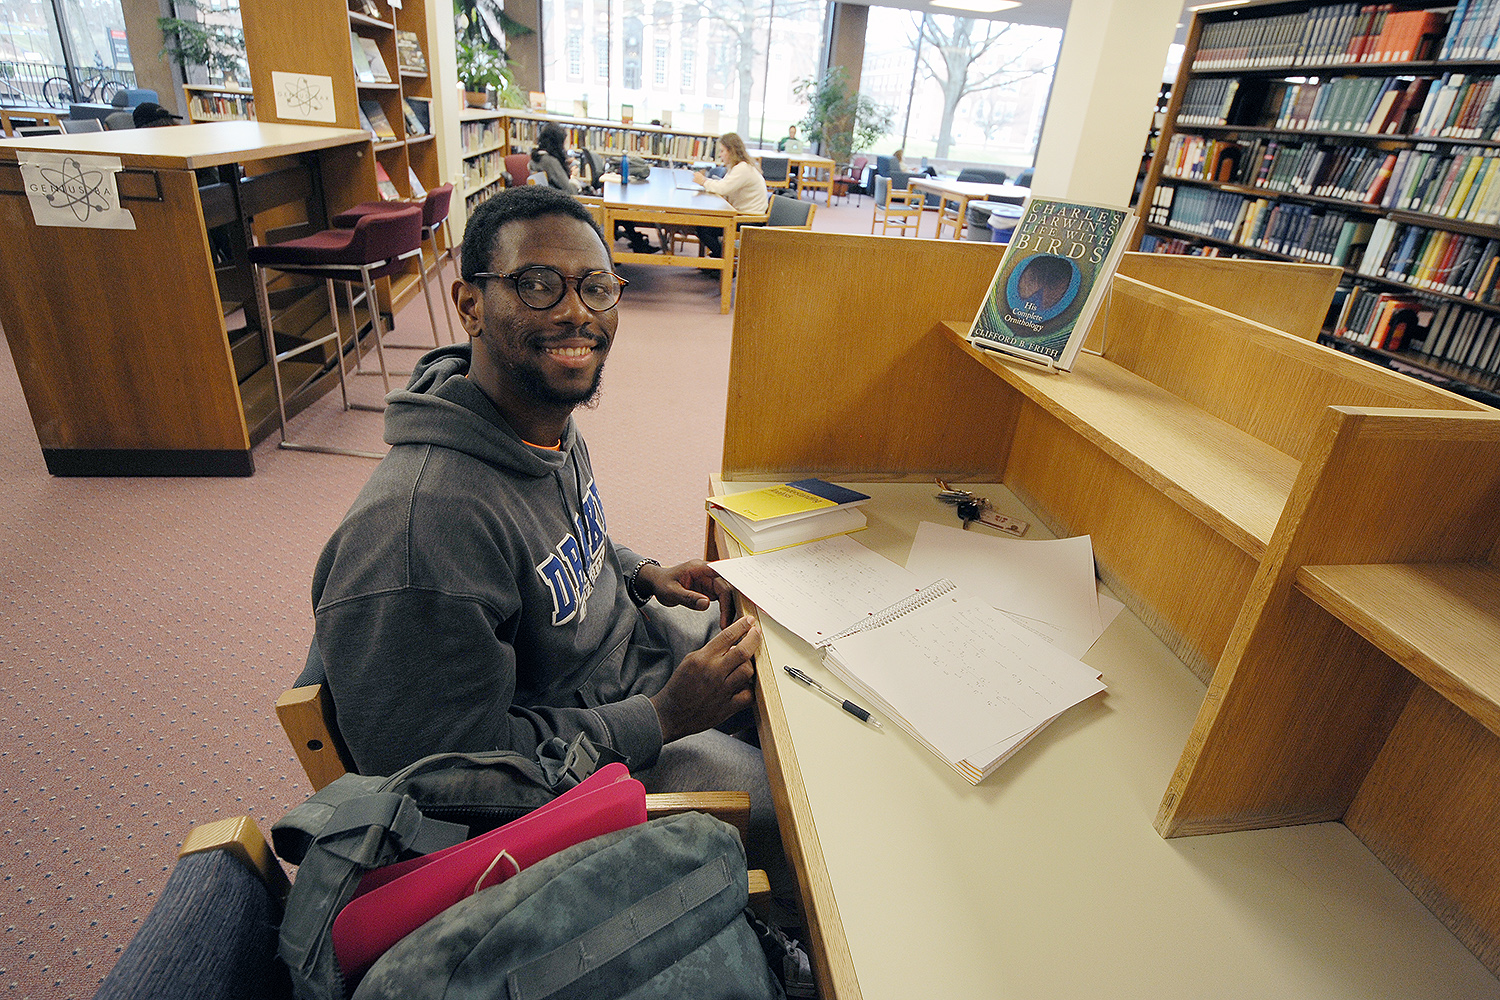 "Jamaica native Nicholas Evans '18 spent his winter recess in Stratford, Conn., where his parents now reside. ""I really enjoyed spending time with [my parents], but I missed the constant interaction with people here at Wesleyan. It's interesting to go from almost complete isolation to having everybody everywhere,"" he said. Nicholas, who is majoring in mathematics, and was already solving equations in the Science Library on his first day back, said he hoped to work on homework while he was away on break, but not everything went according to plan. ""I'm an avid reader and I love to borrow four or five books and just read,"" he said. ""But math. Somehow math homework never came up."""